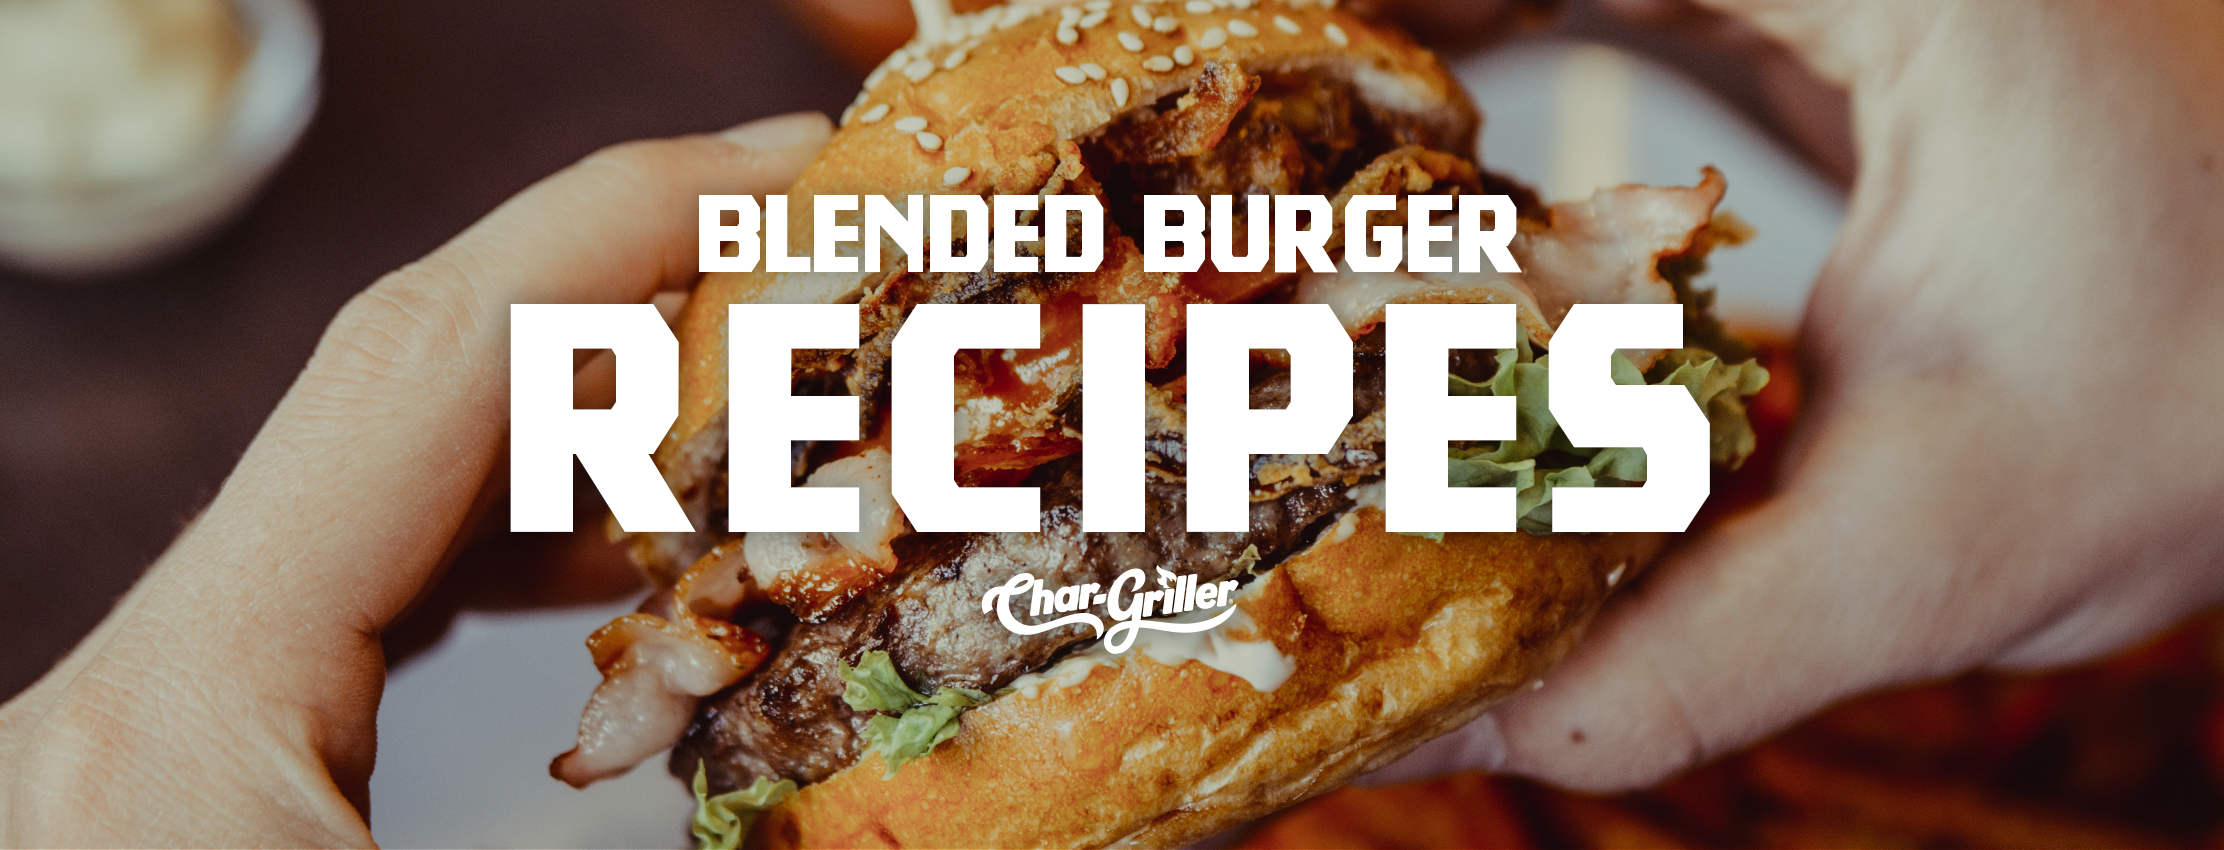 Blended Burger Recipes